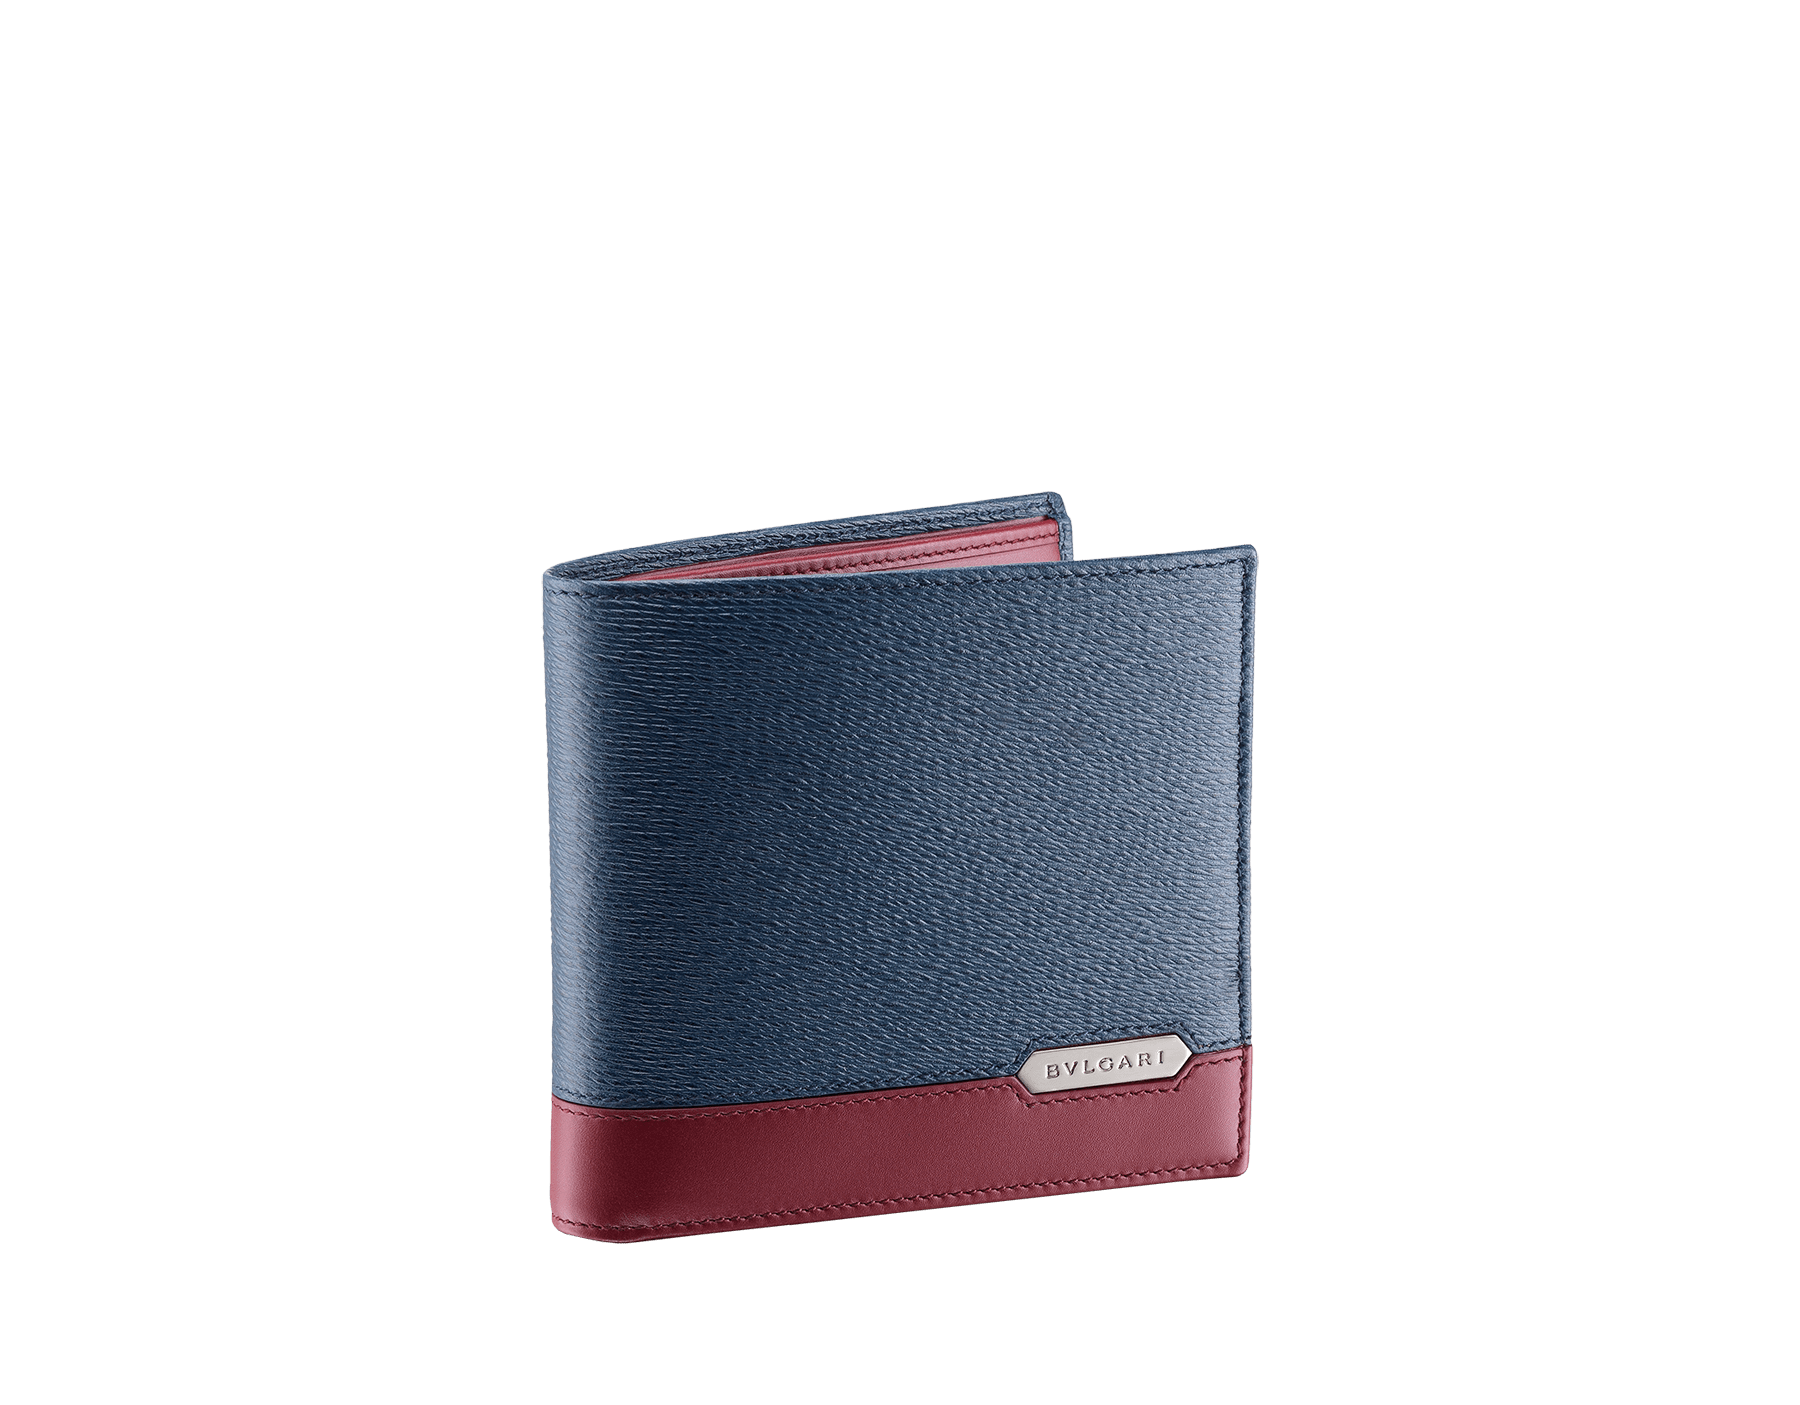 Serpenti Scaglie men's wallet in denim sapphire grazed calf leather and roman garnet calf leather. Bvlgari logo engraved on the hexagonal scaglie metal plate finished in dark ruthenium. 288457 image 1